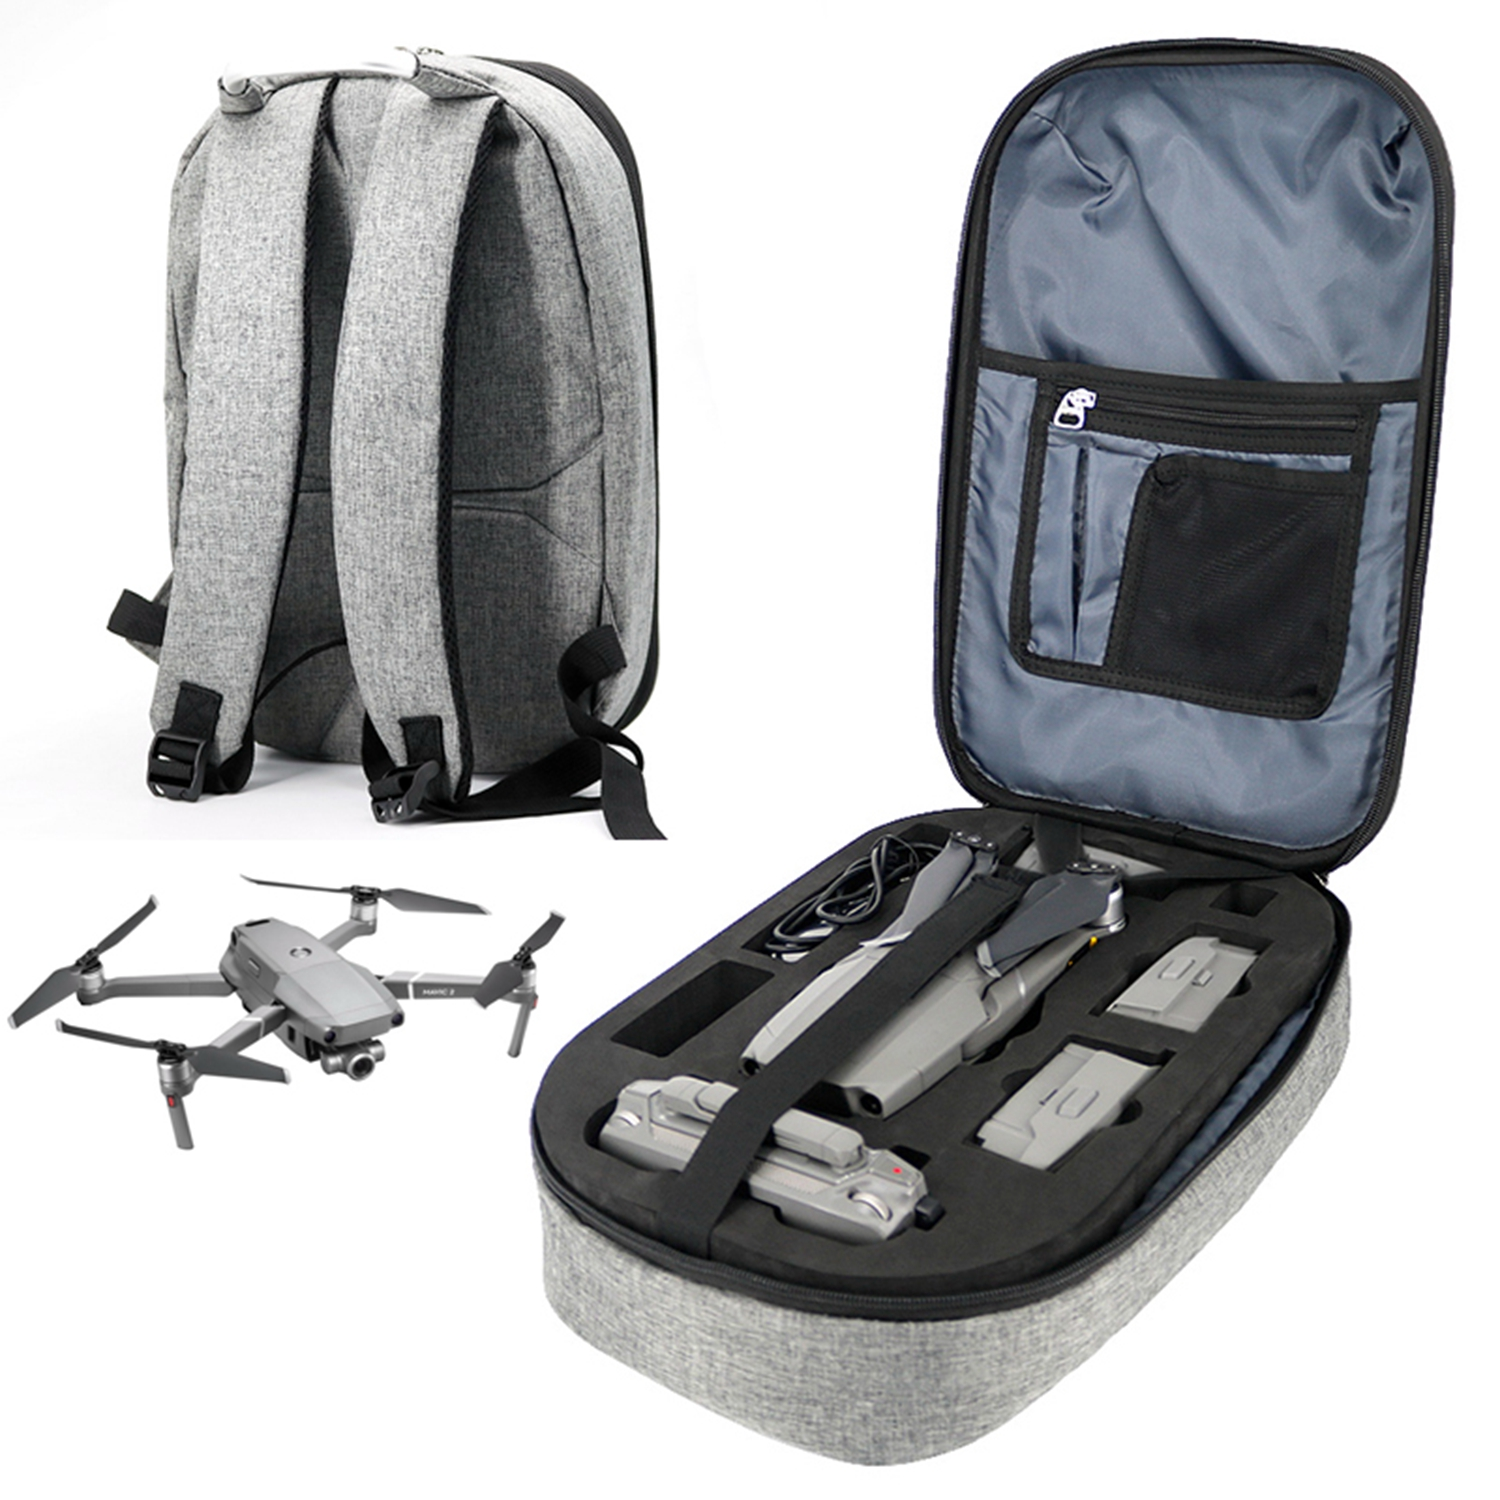 Dji Mavic 2 Backpack Storage Case Shoulder Bag Carrying Box for Mavic 2 Pro Zoom Drone Battery Portable Hard-shell Suitcase Kits